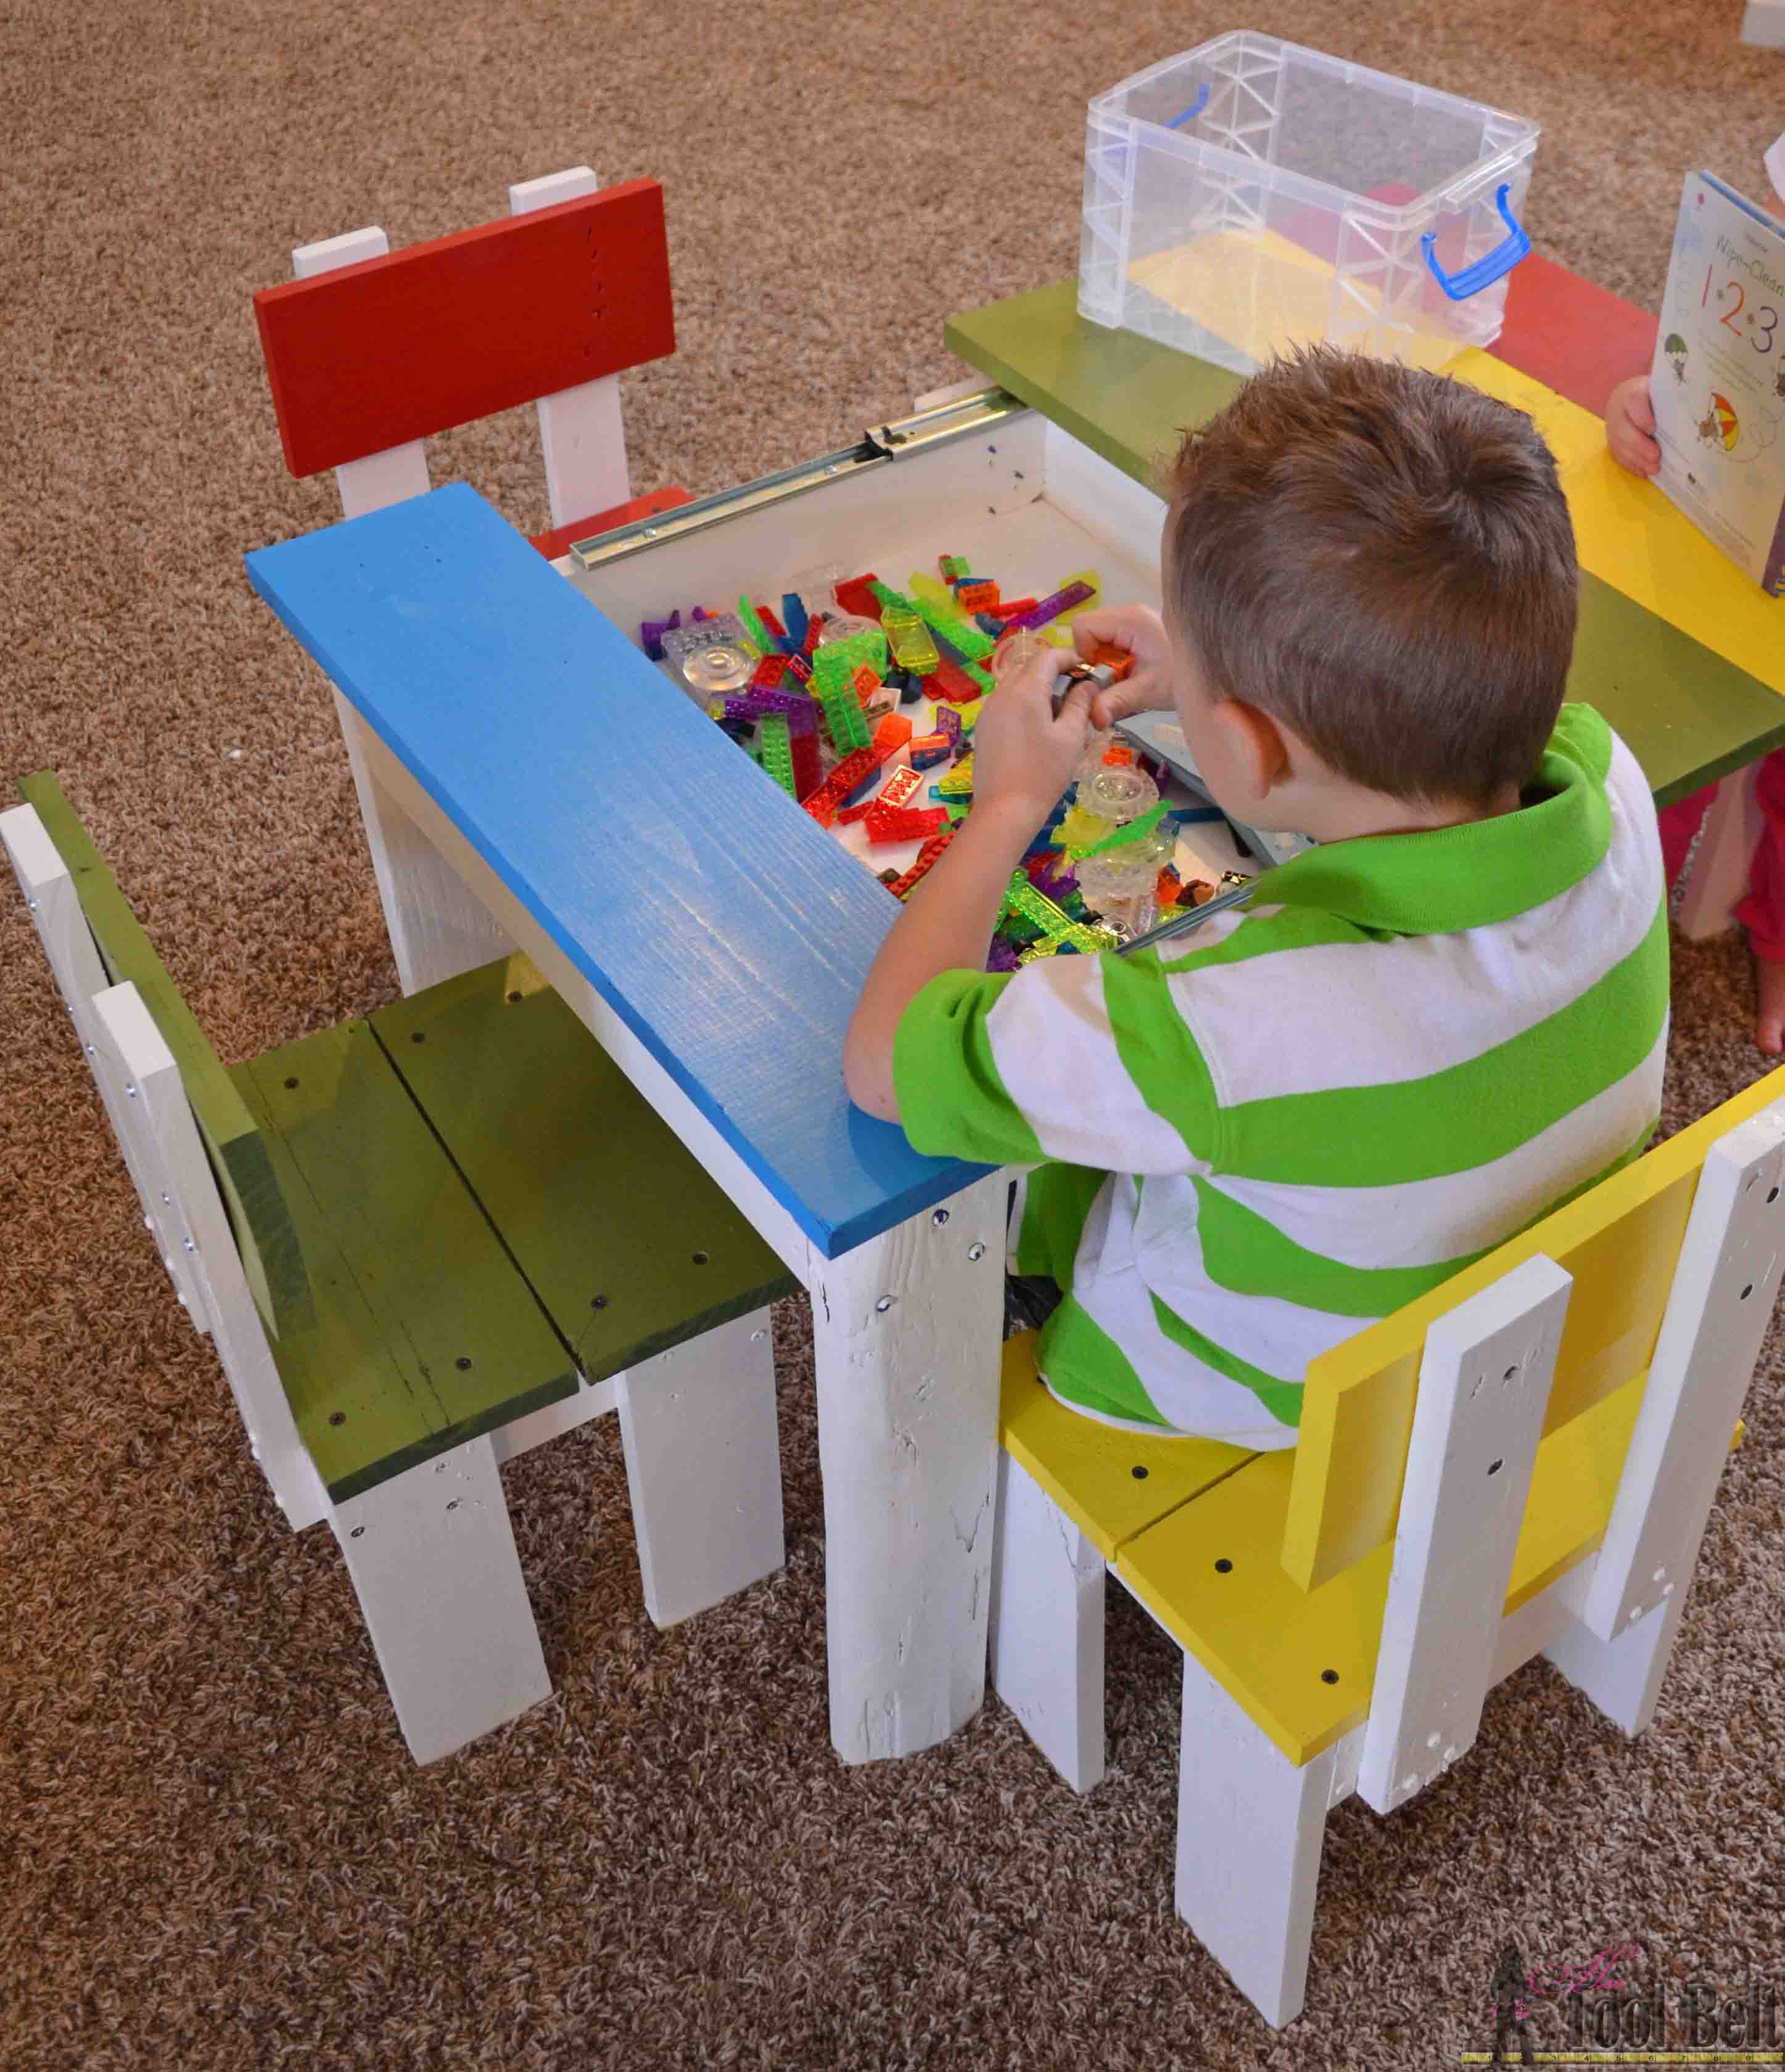 Build an easy kids table and chair set with a sliding top to store Legos. & Simple Kidu0027s Table and Chair Set - Her Tool Belt